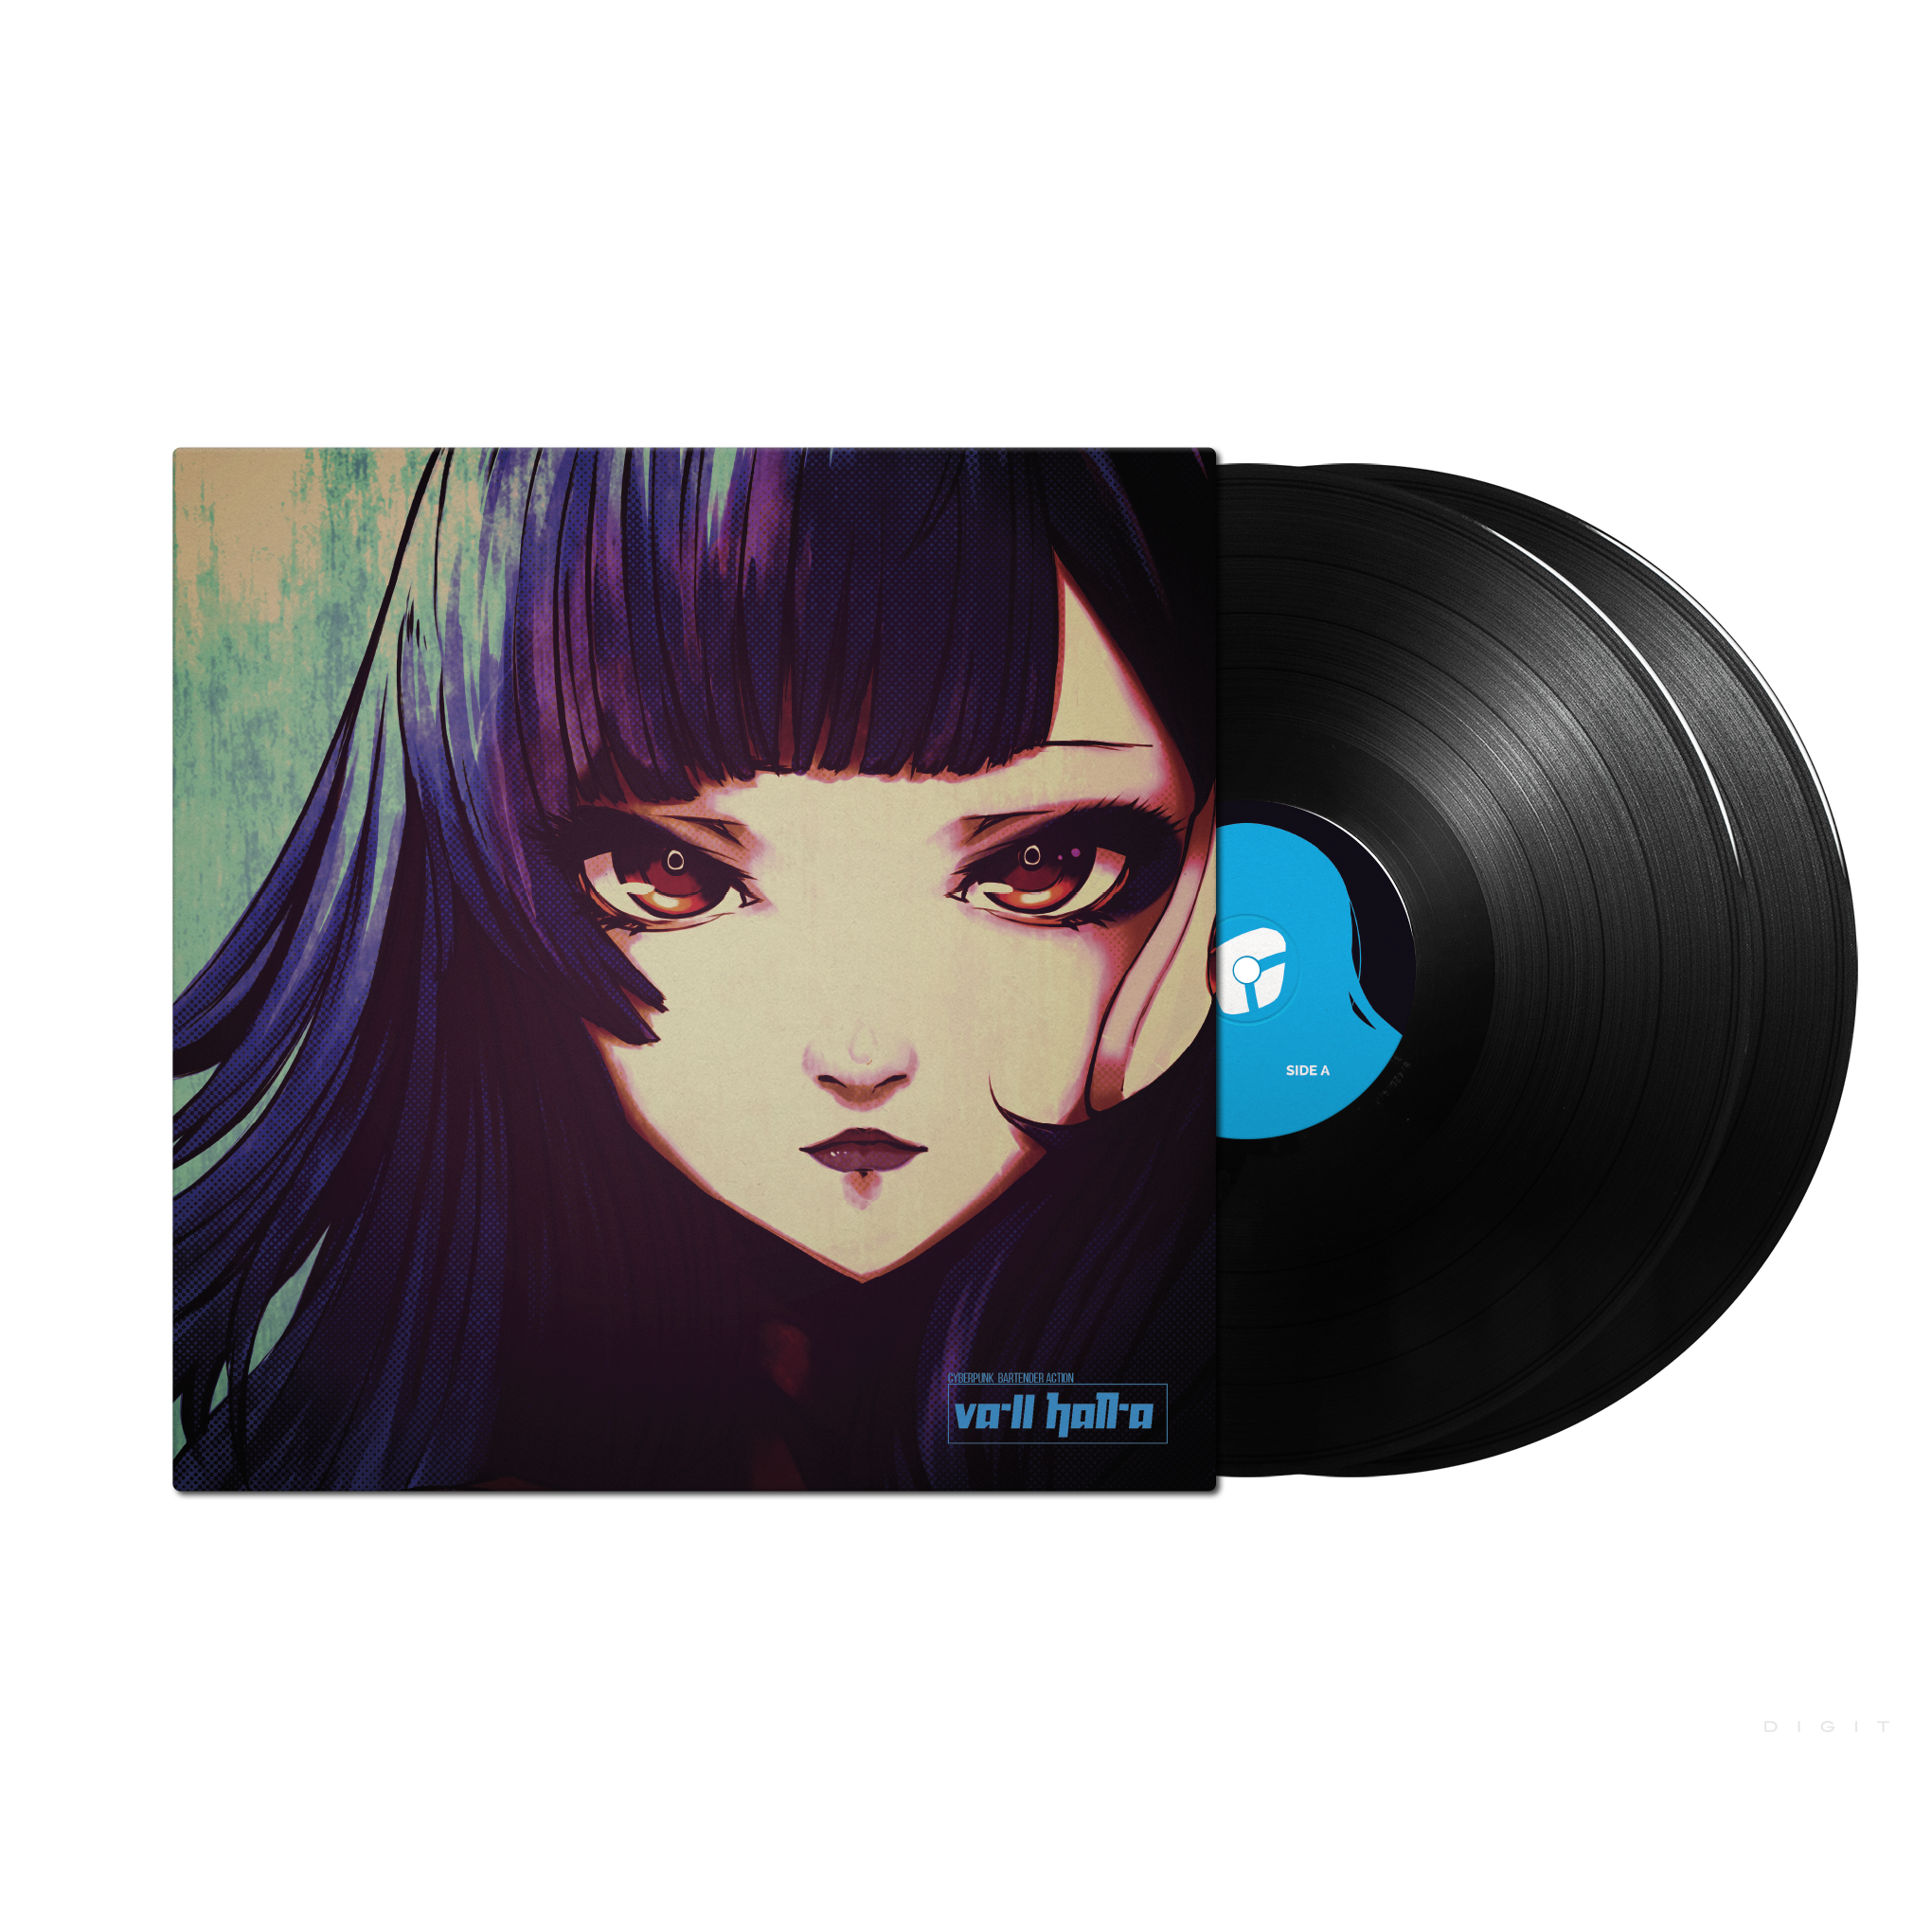 VA-11 HALL-A (Original Soundtrack)